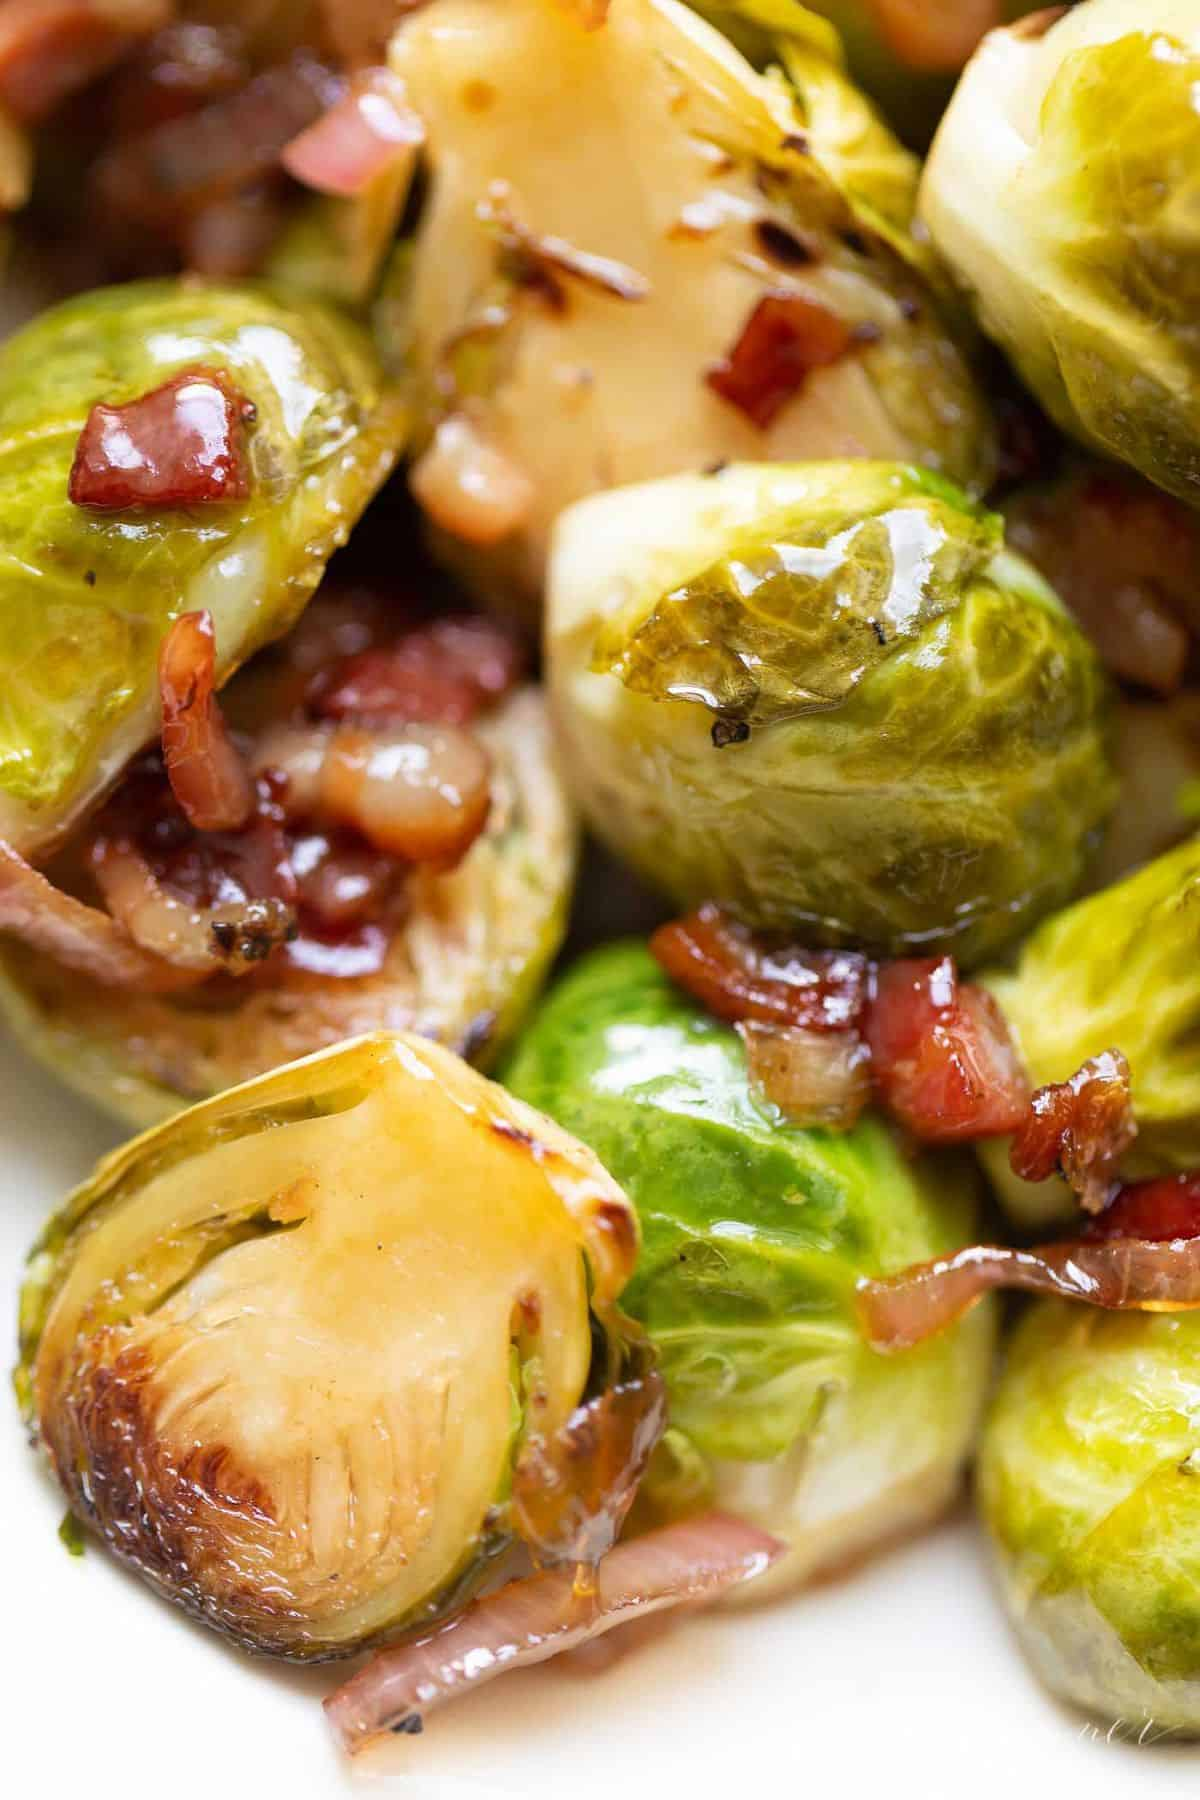 Close-up of sauteed brussels sprouts, pancetta and shallots.